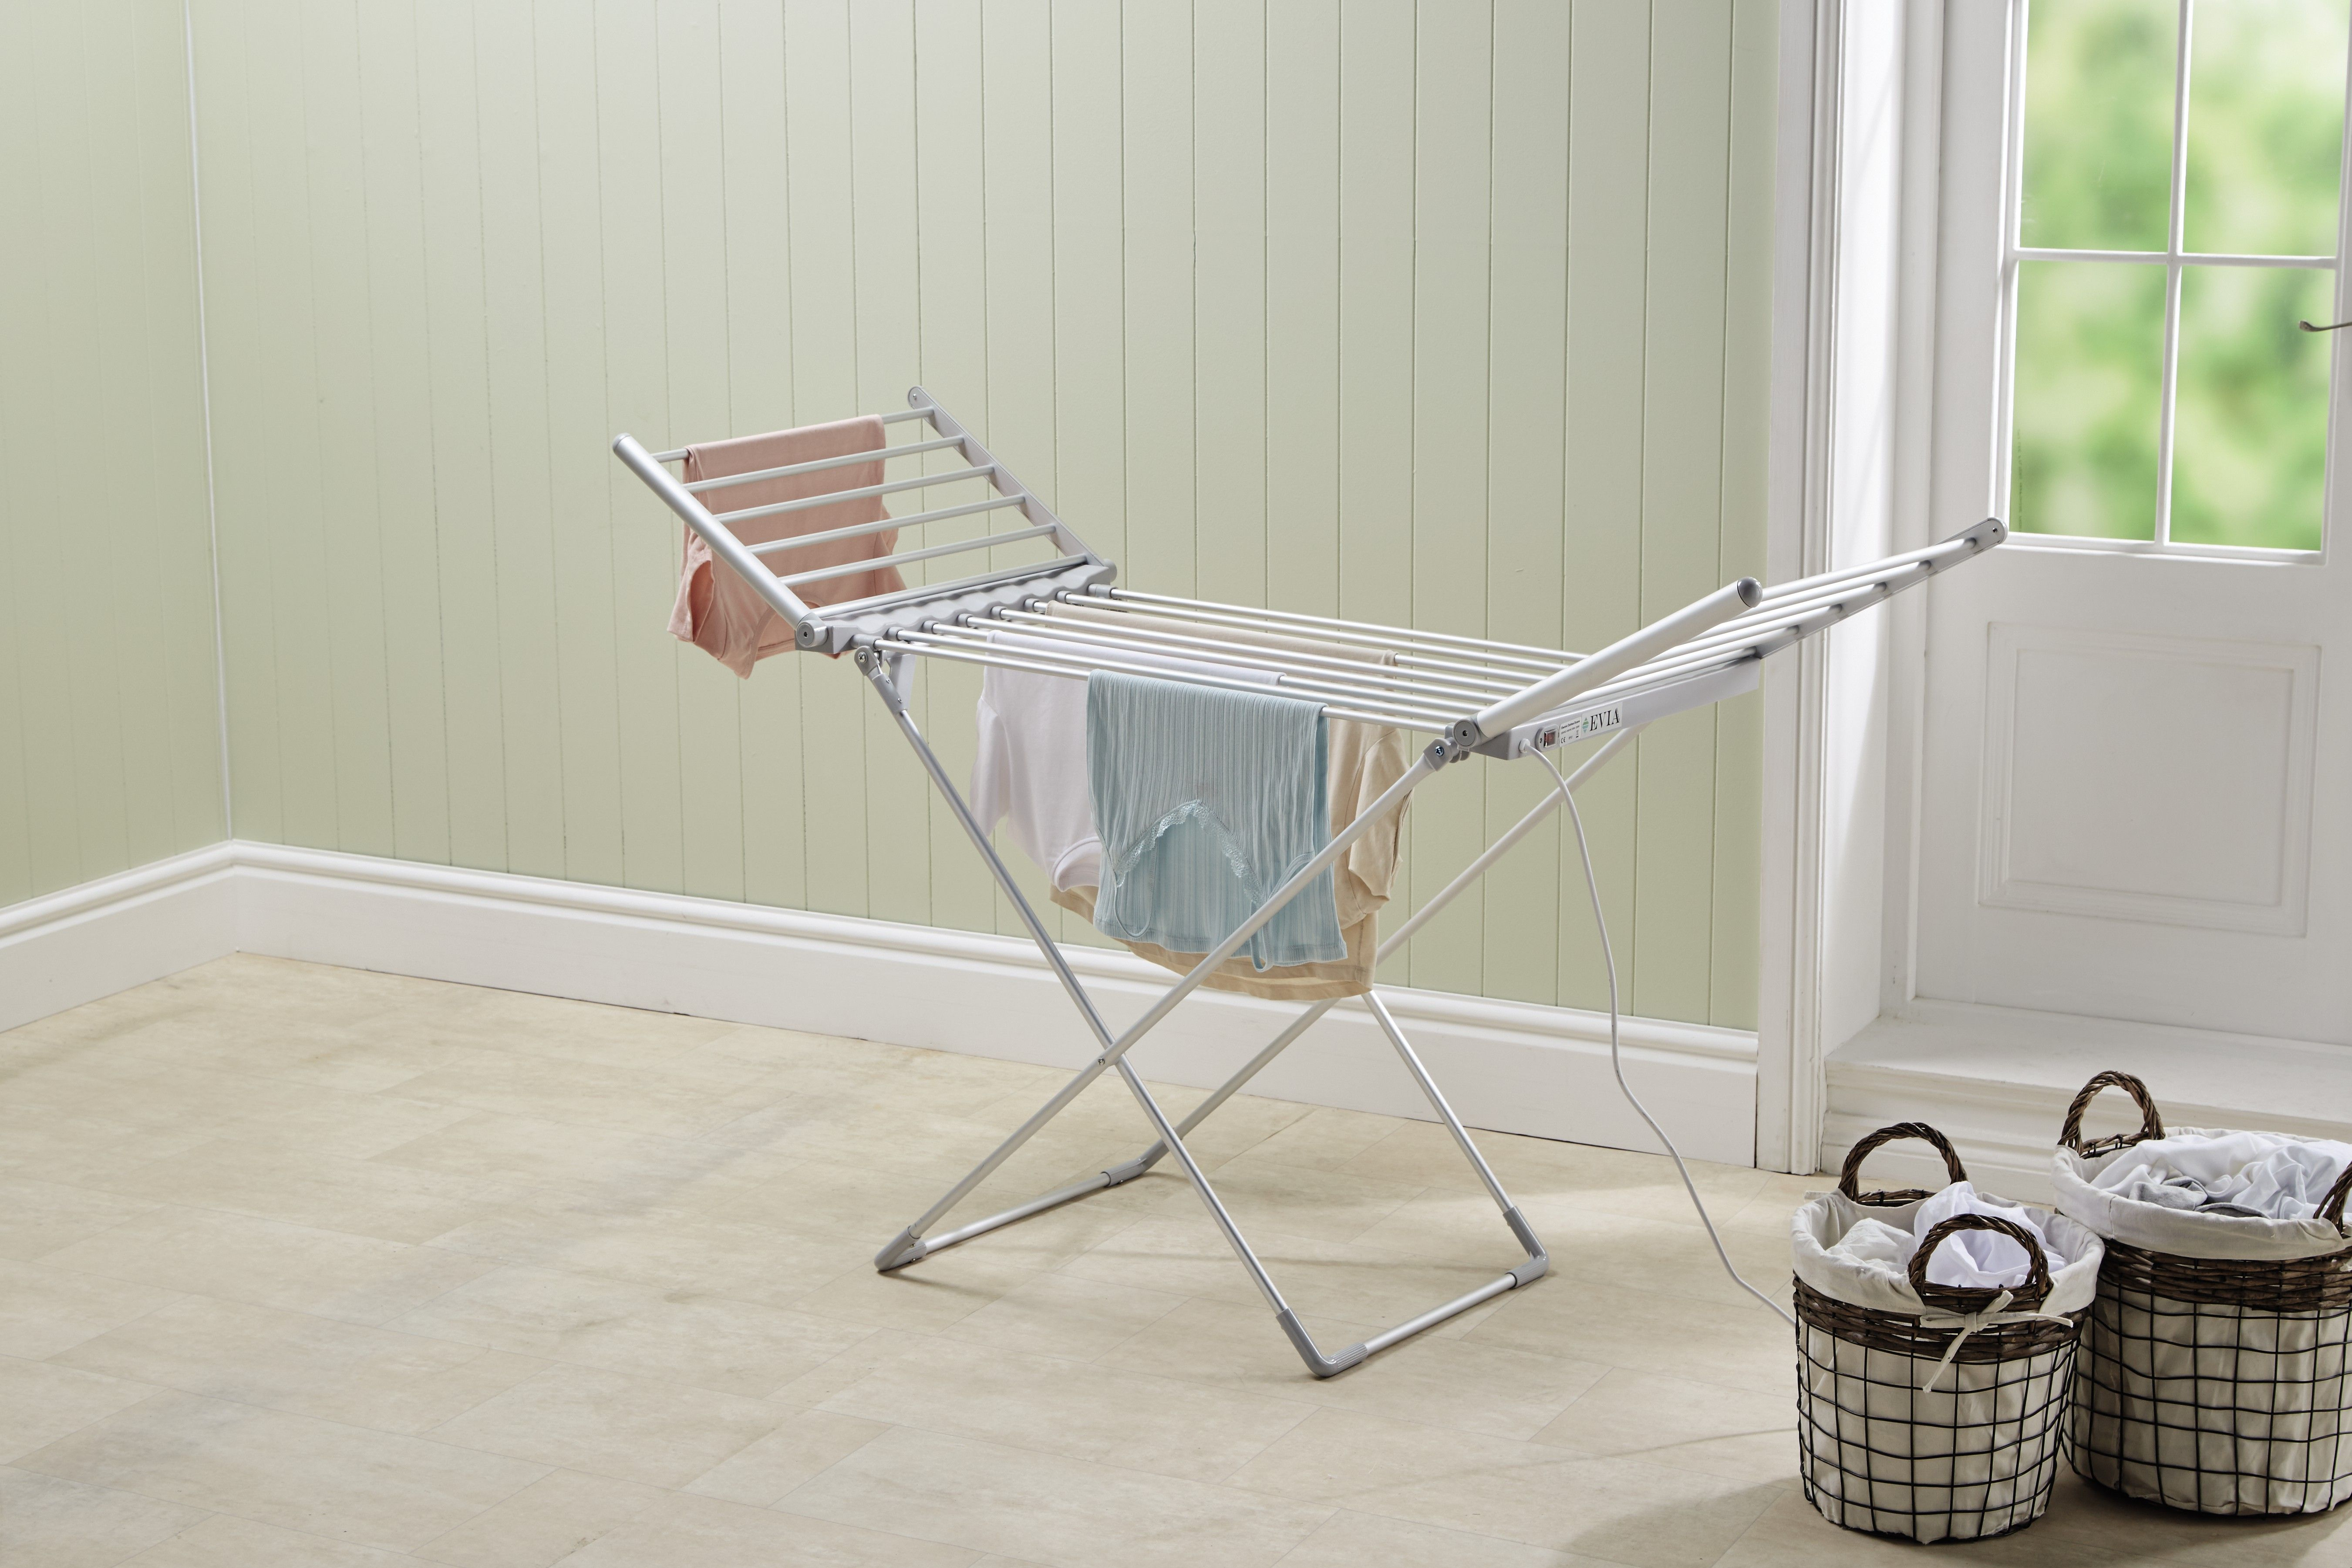 aldi s new heated clothes airer is